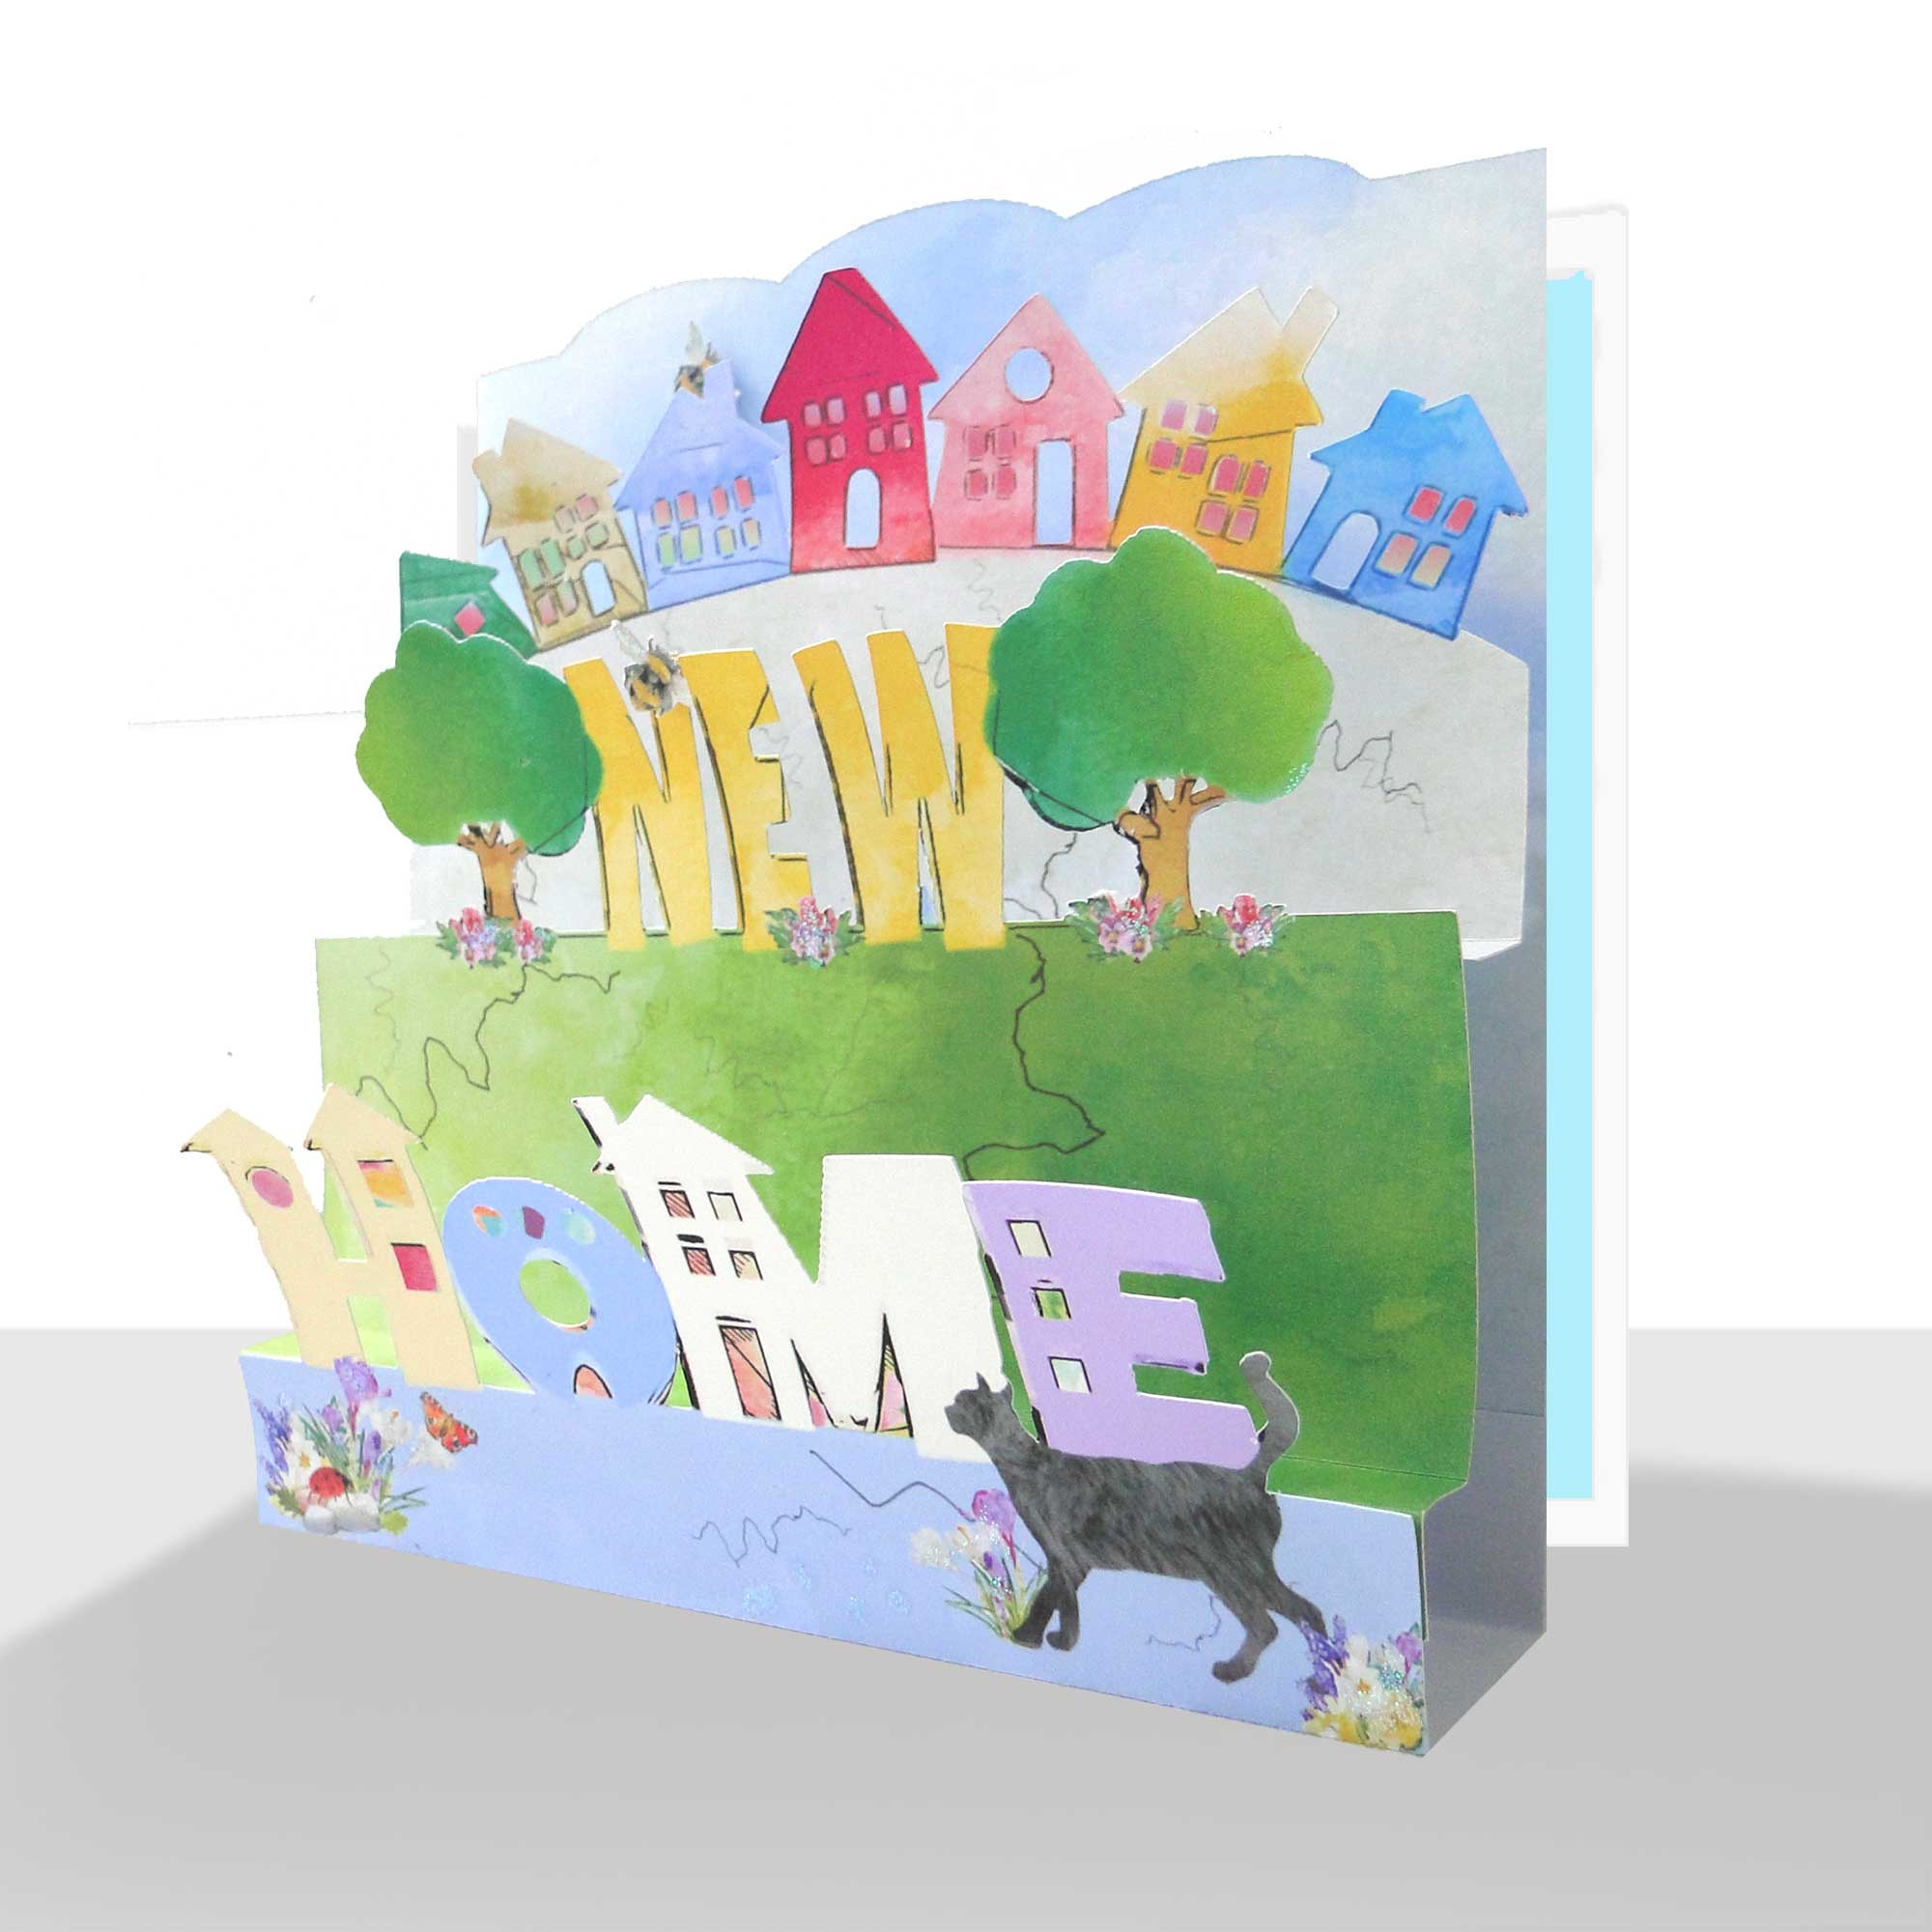 3D New Home Card - Luxury Pop Up Handmade A luxury pop up New Home Card hand embellished with bees and a touch of sparkle.